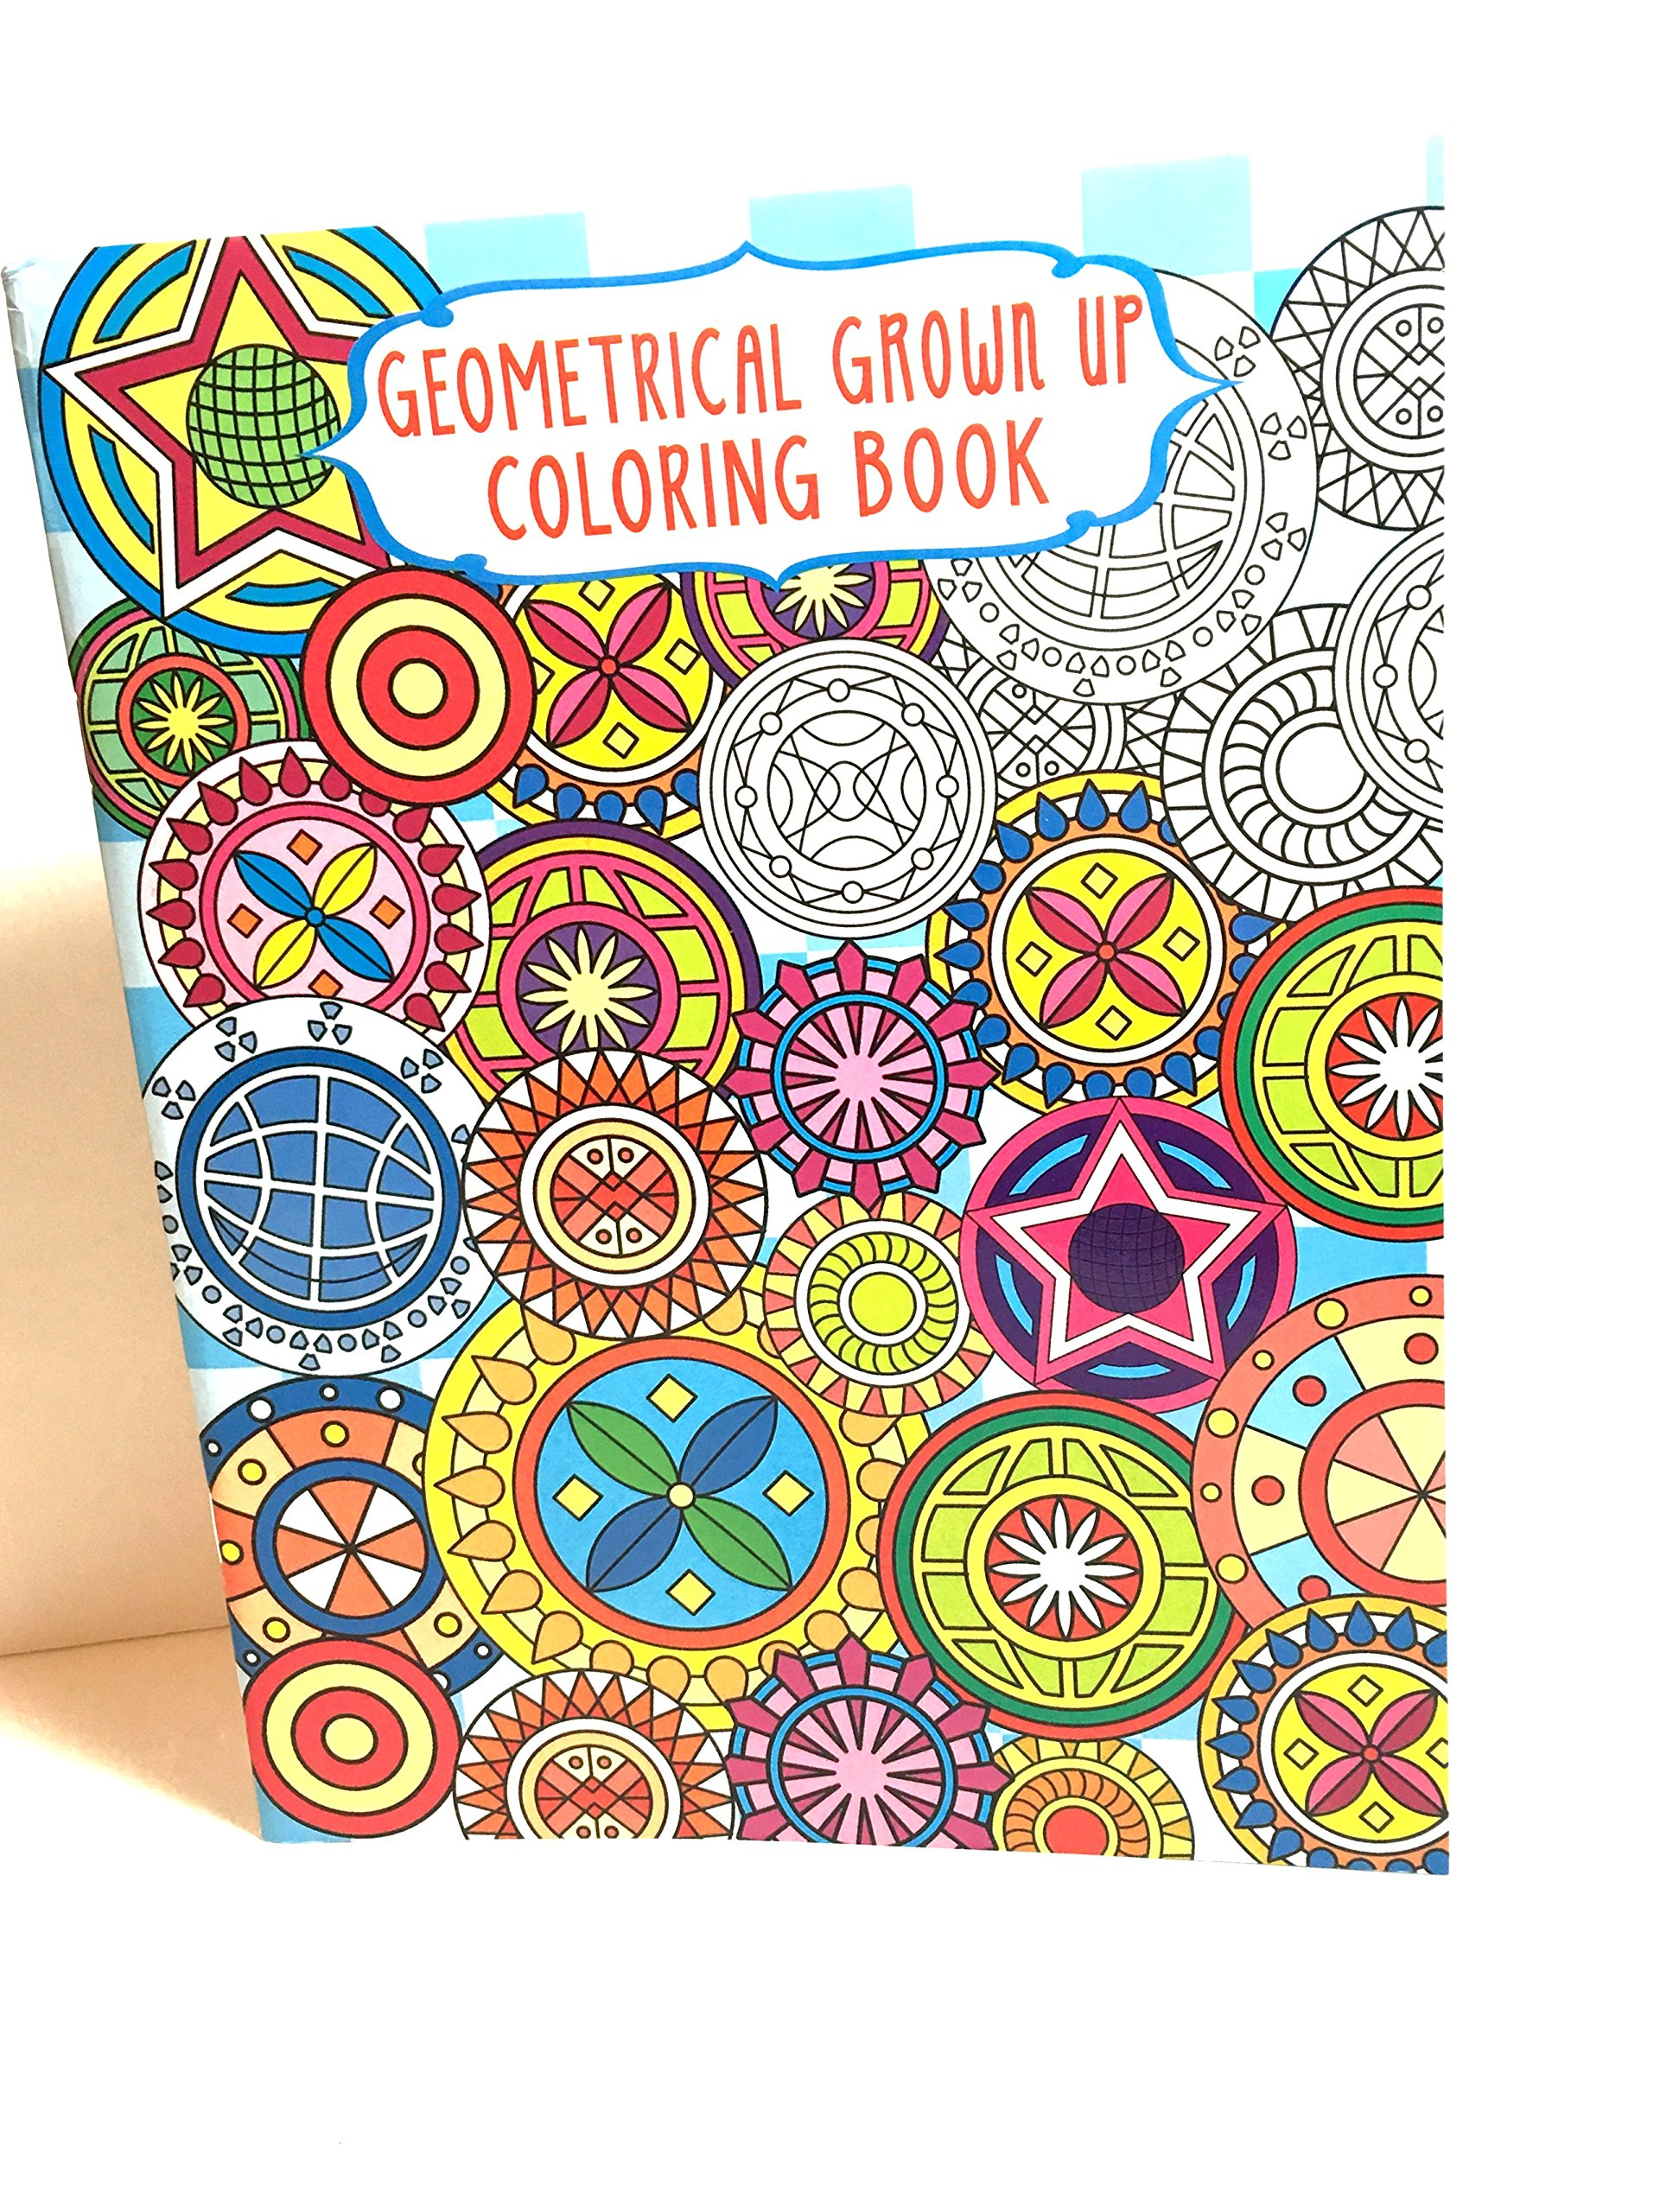 Coloring book grown up - Geometrical Grown Up Coloring Book Adult Coloring Book 9781623690960 Amazon Com Books